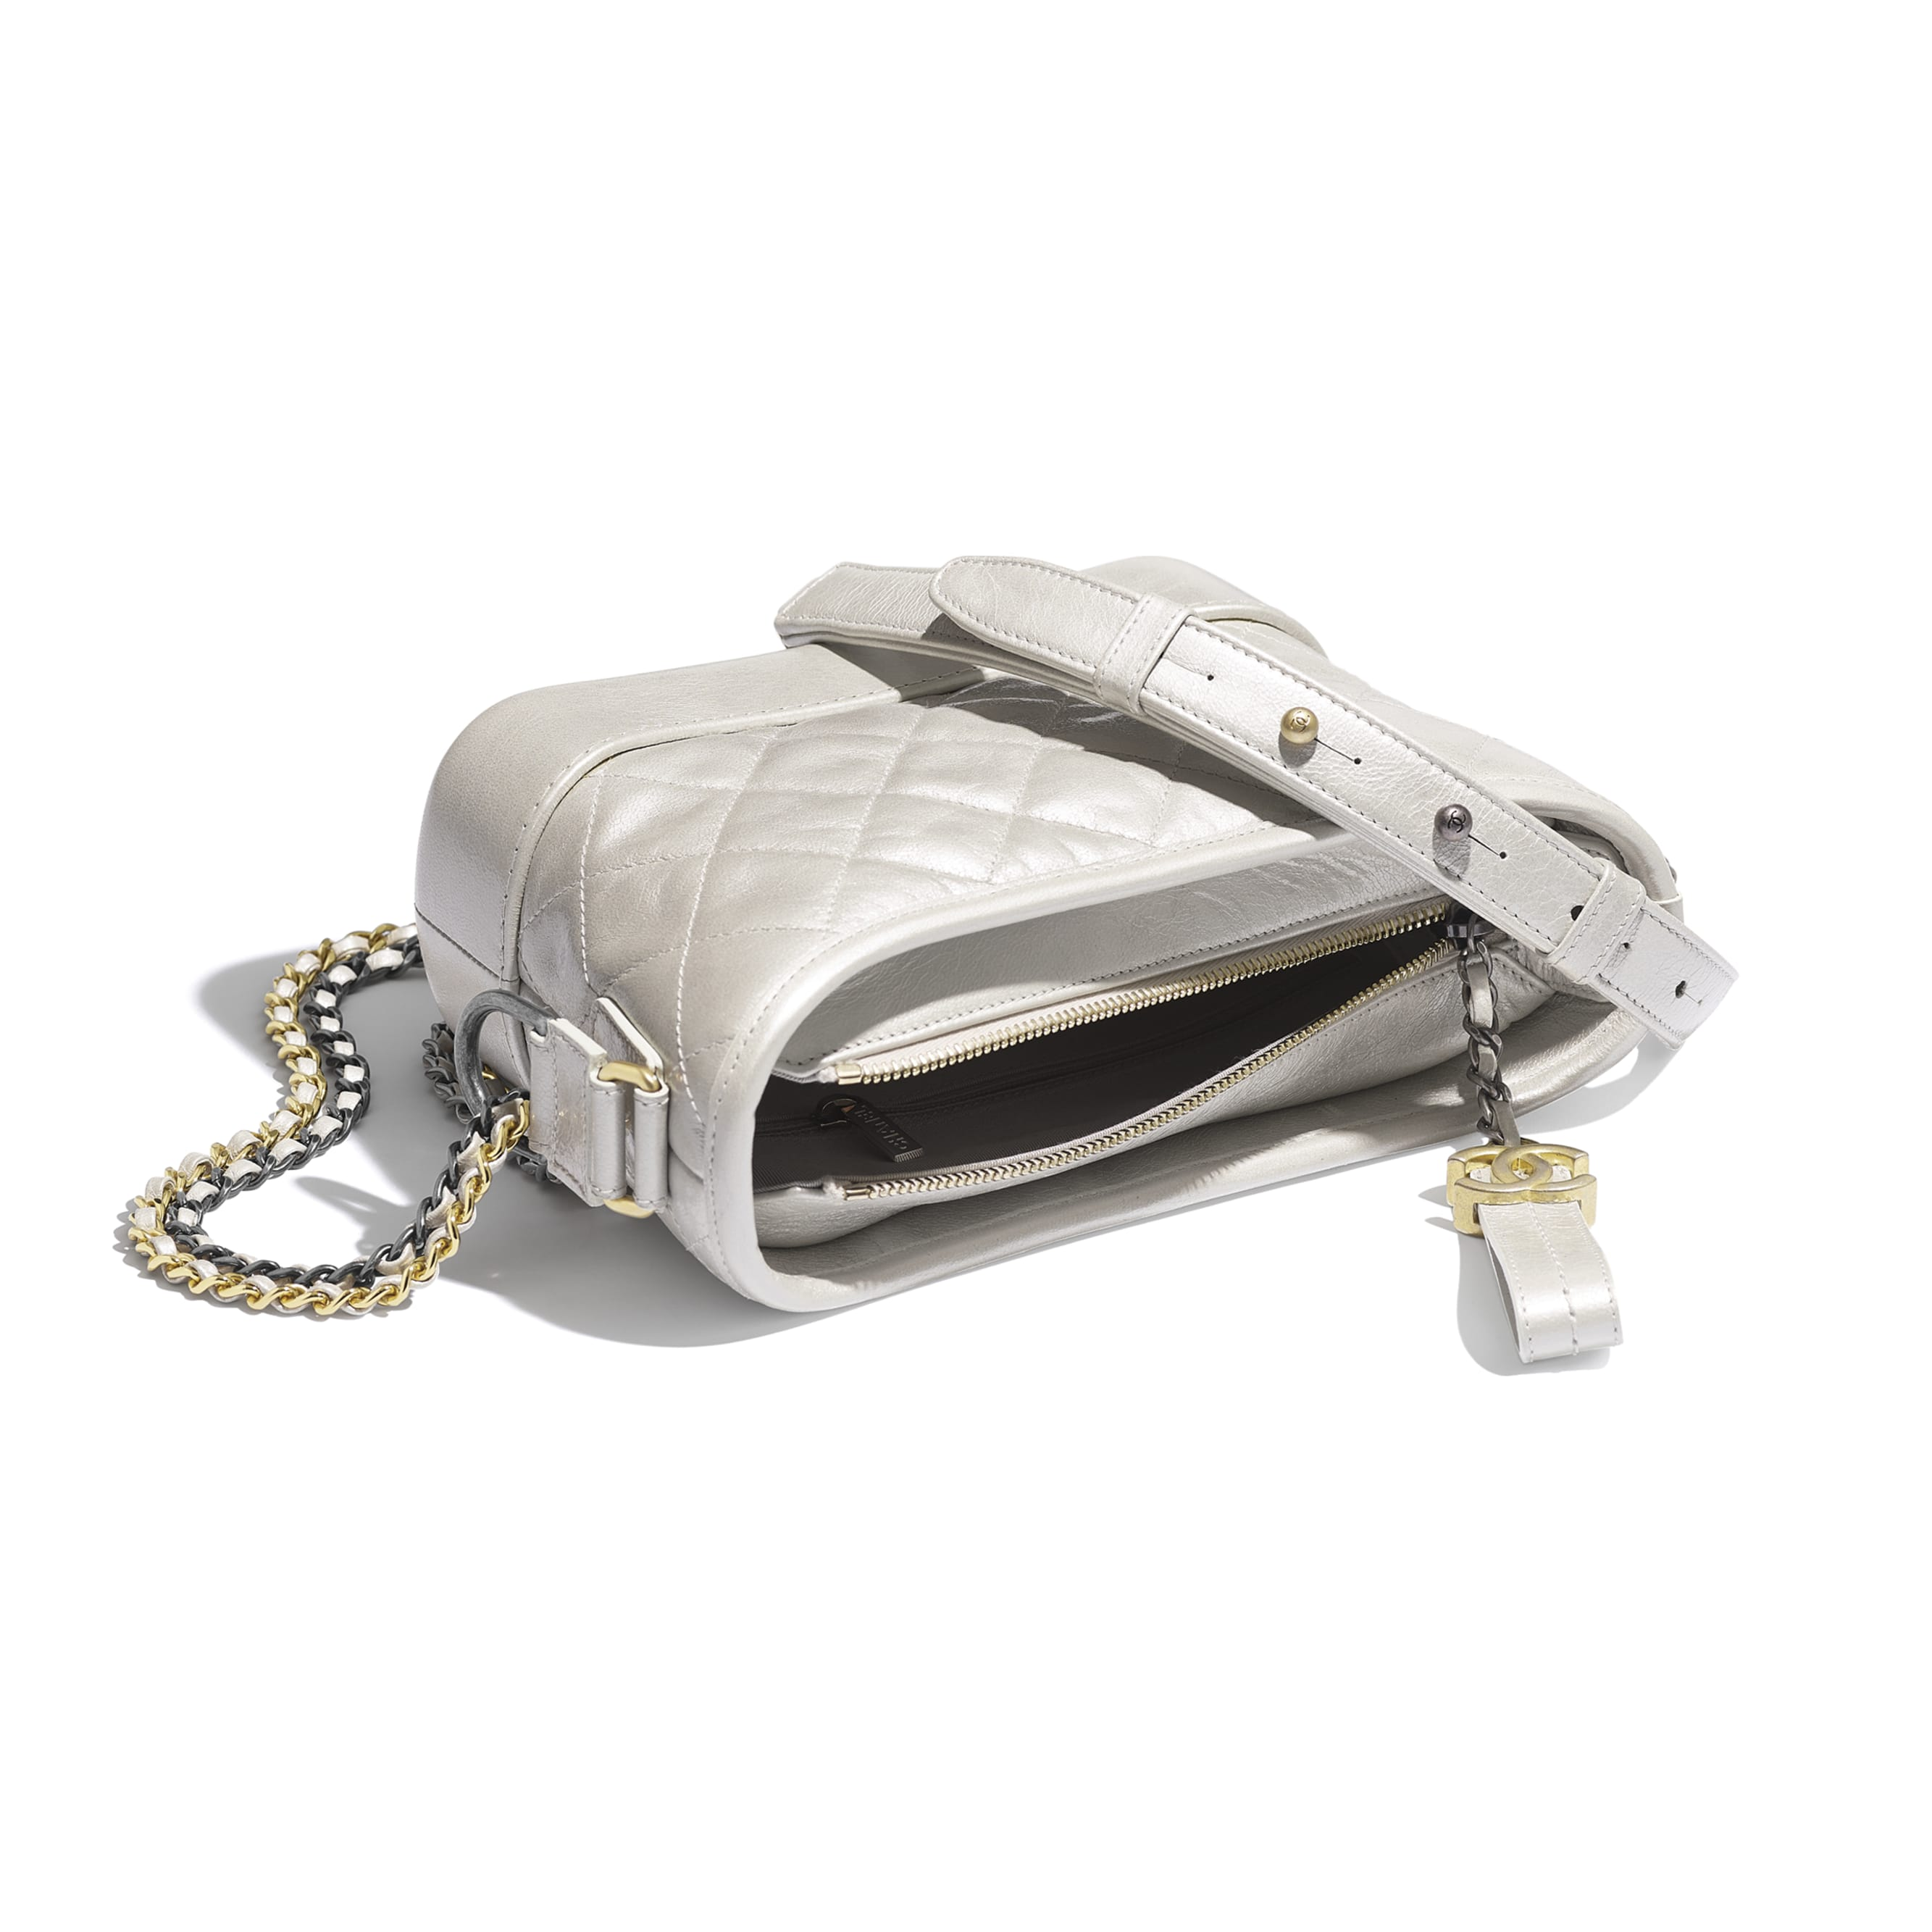 CHANEL'S GABRIELLE Small Hobo Bag - Silver - Metallic Crumpled Lambskin, Calfskin, Gold-Tone & Silver-Tone Metal - CHANEL - Other view - see standard sized version